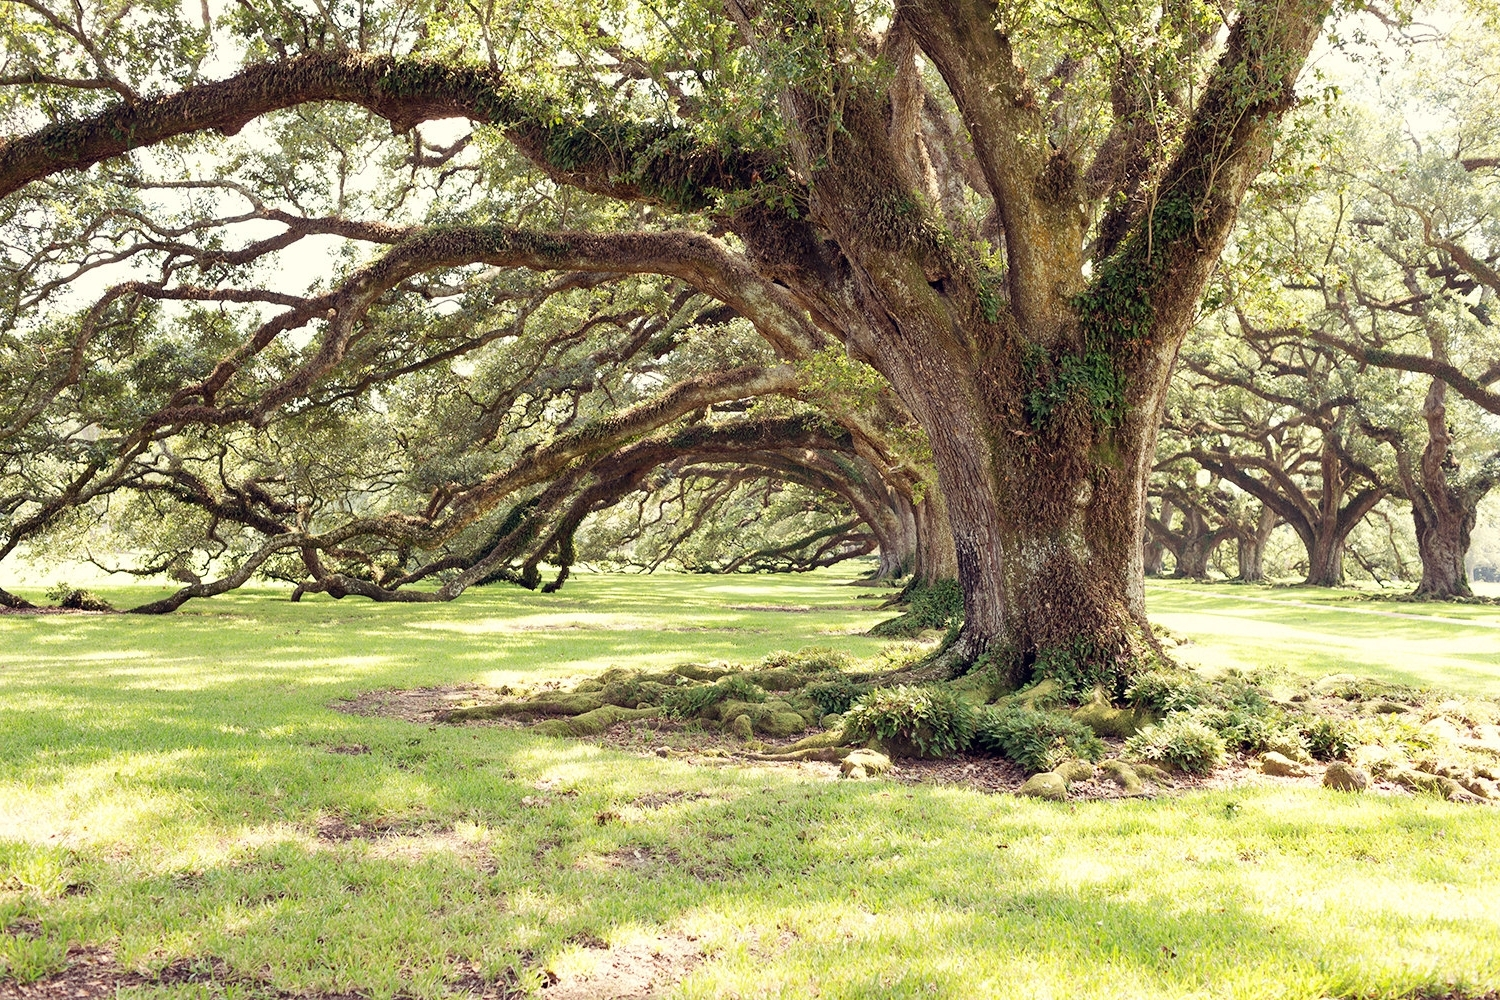 Louisiana Photography Live Oaks Oversize Wall Art Rustic With Favorite Live Oak Tree Wall Art (View 8 of 15)